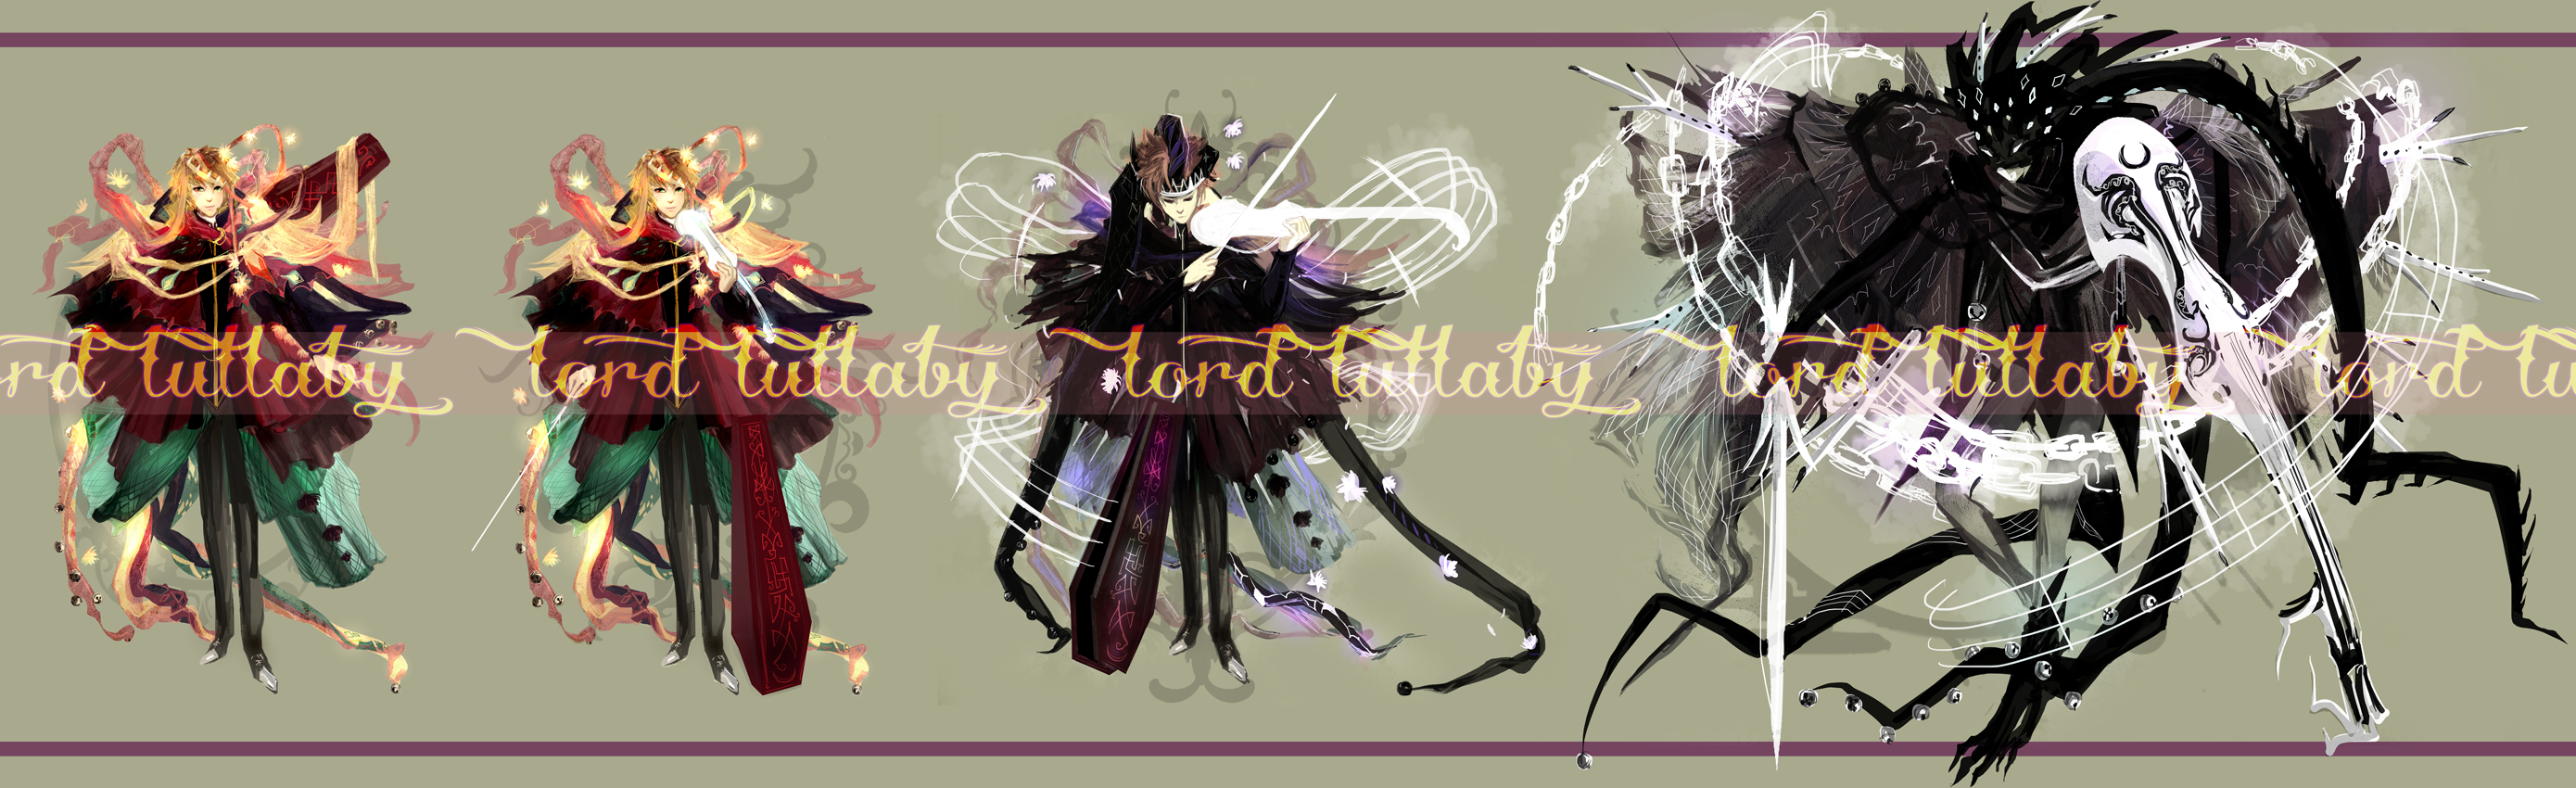 LORD LULLABY adopt [CLOSED] by ensoul